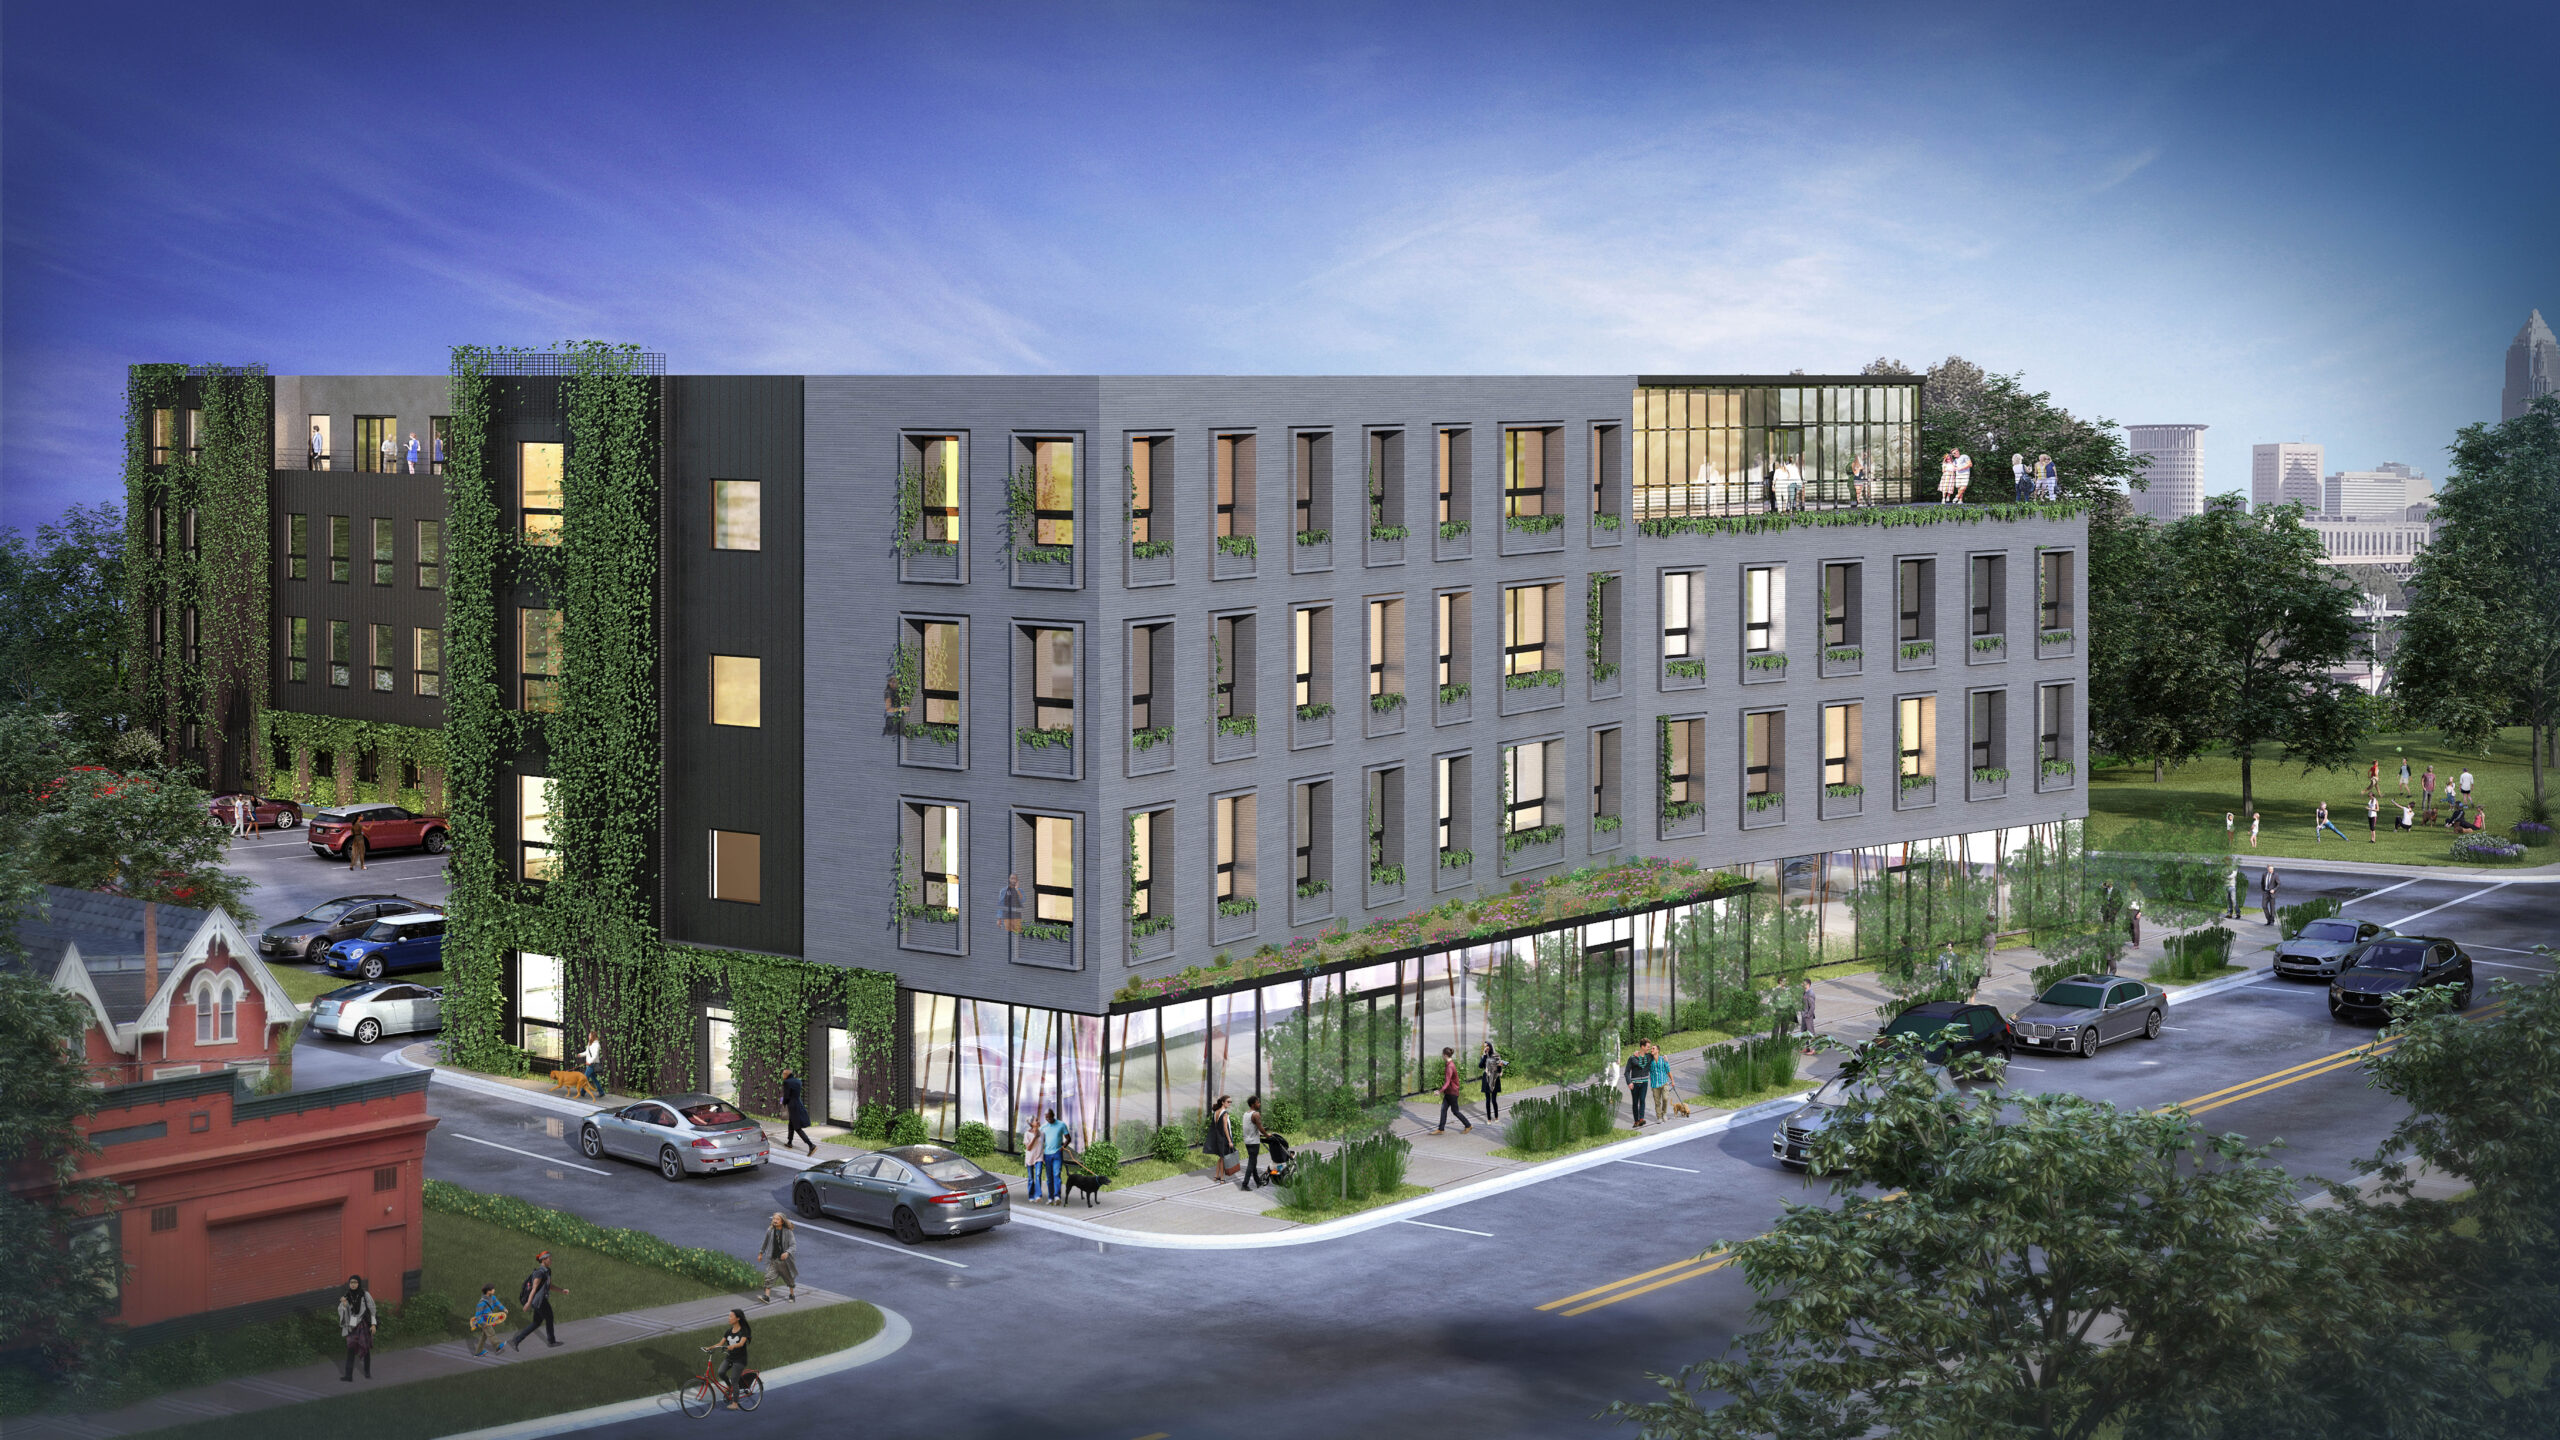 04_2020-07-08 – Lincoln Tremont Rendering_North View – No Watermark